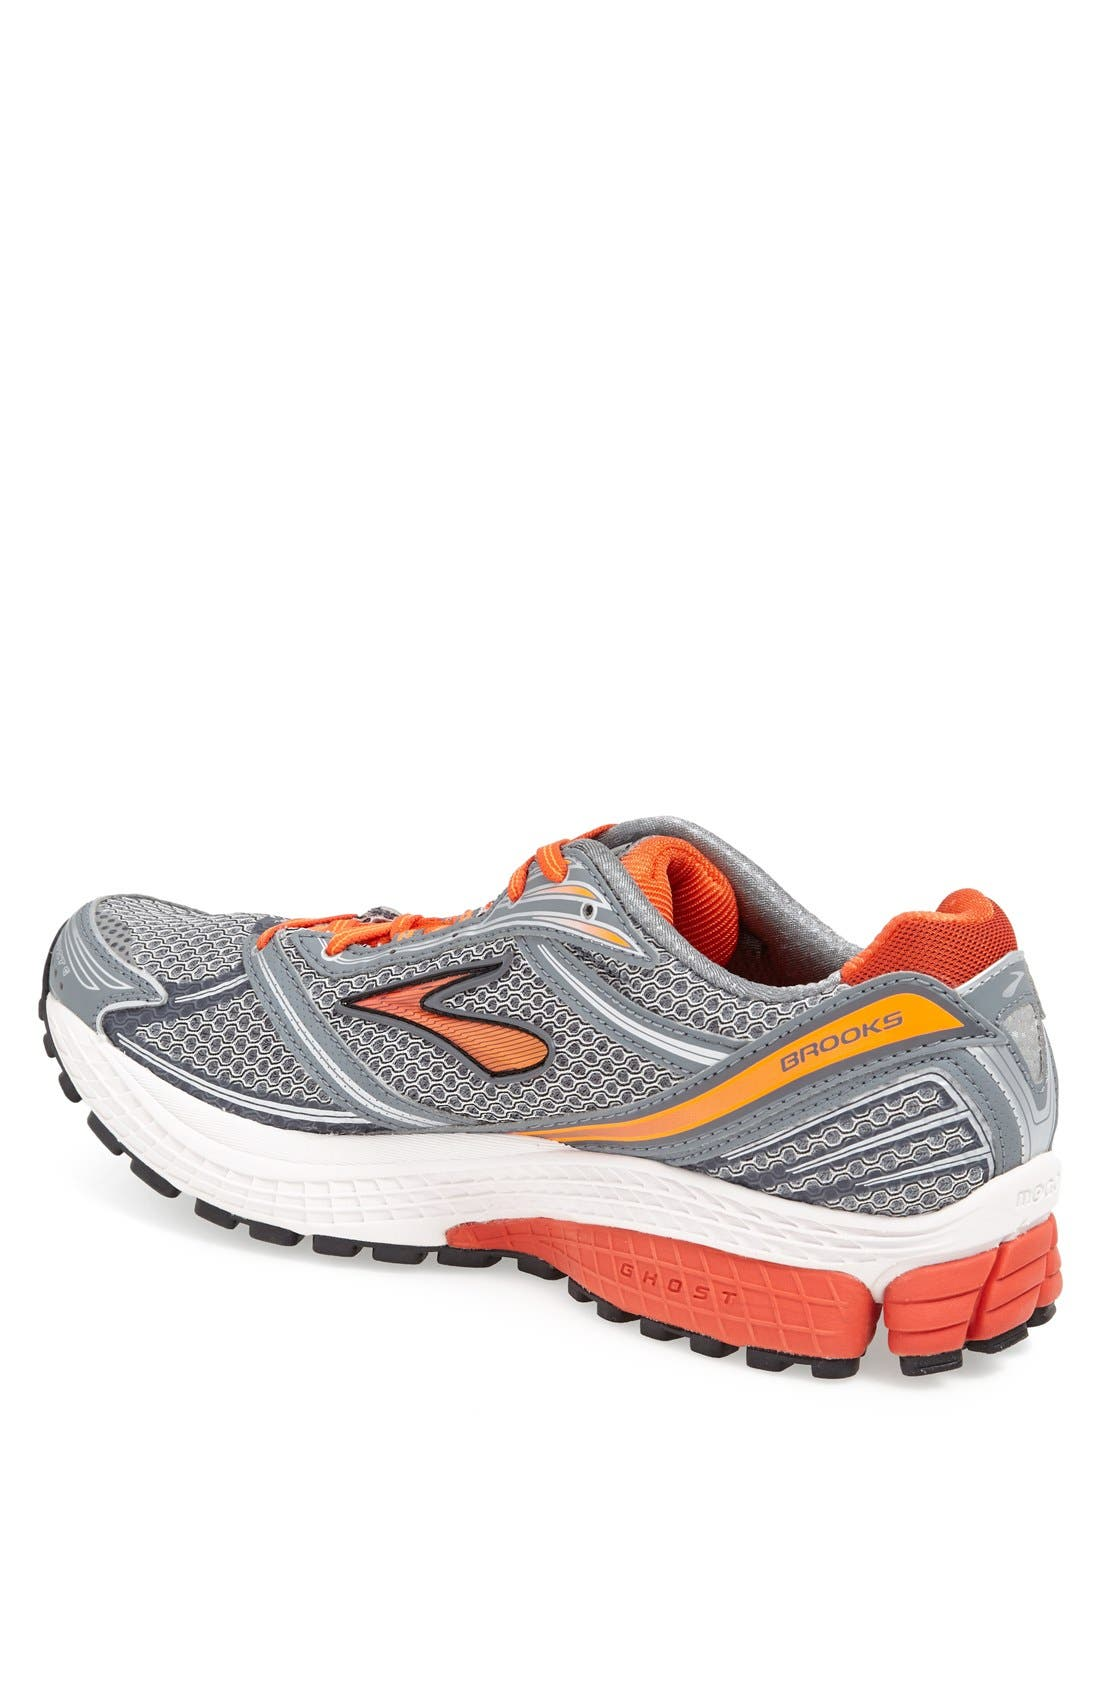 Alternate Image 2  - Brooks 'Ghost 6' Running Shoe (Men) (Regular Retail Price: $109.95)